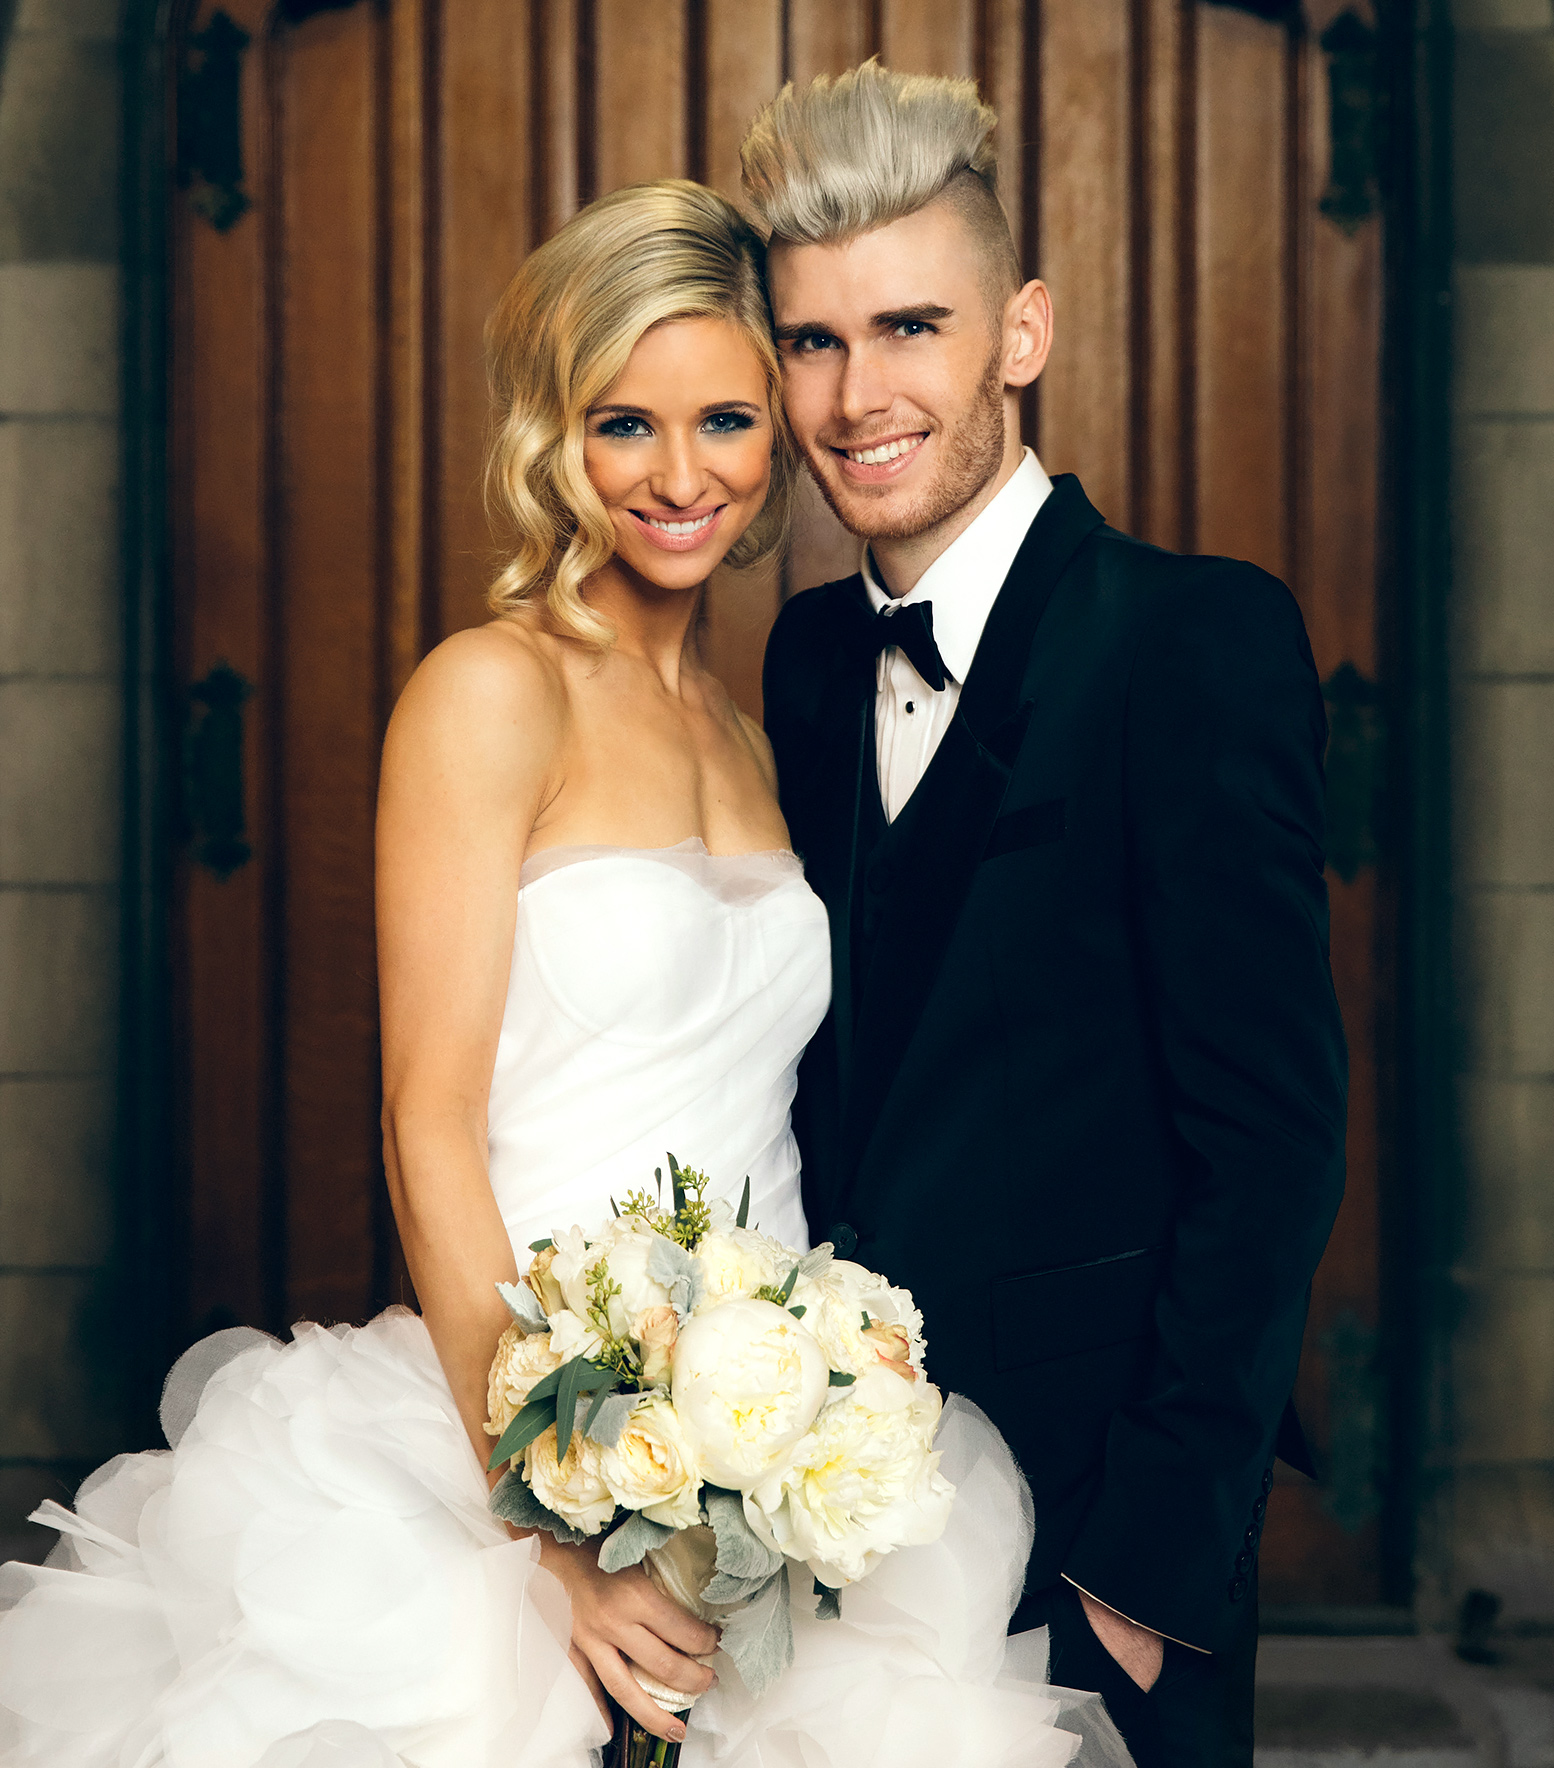 Wedding Photo of Annie Coggeshall and Colton Dixon